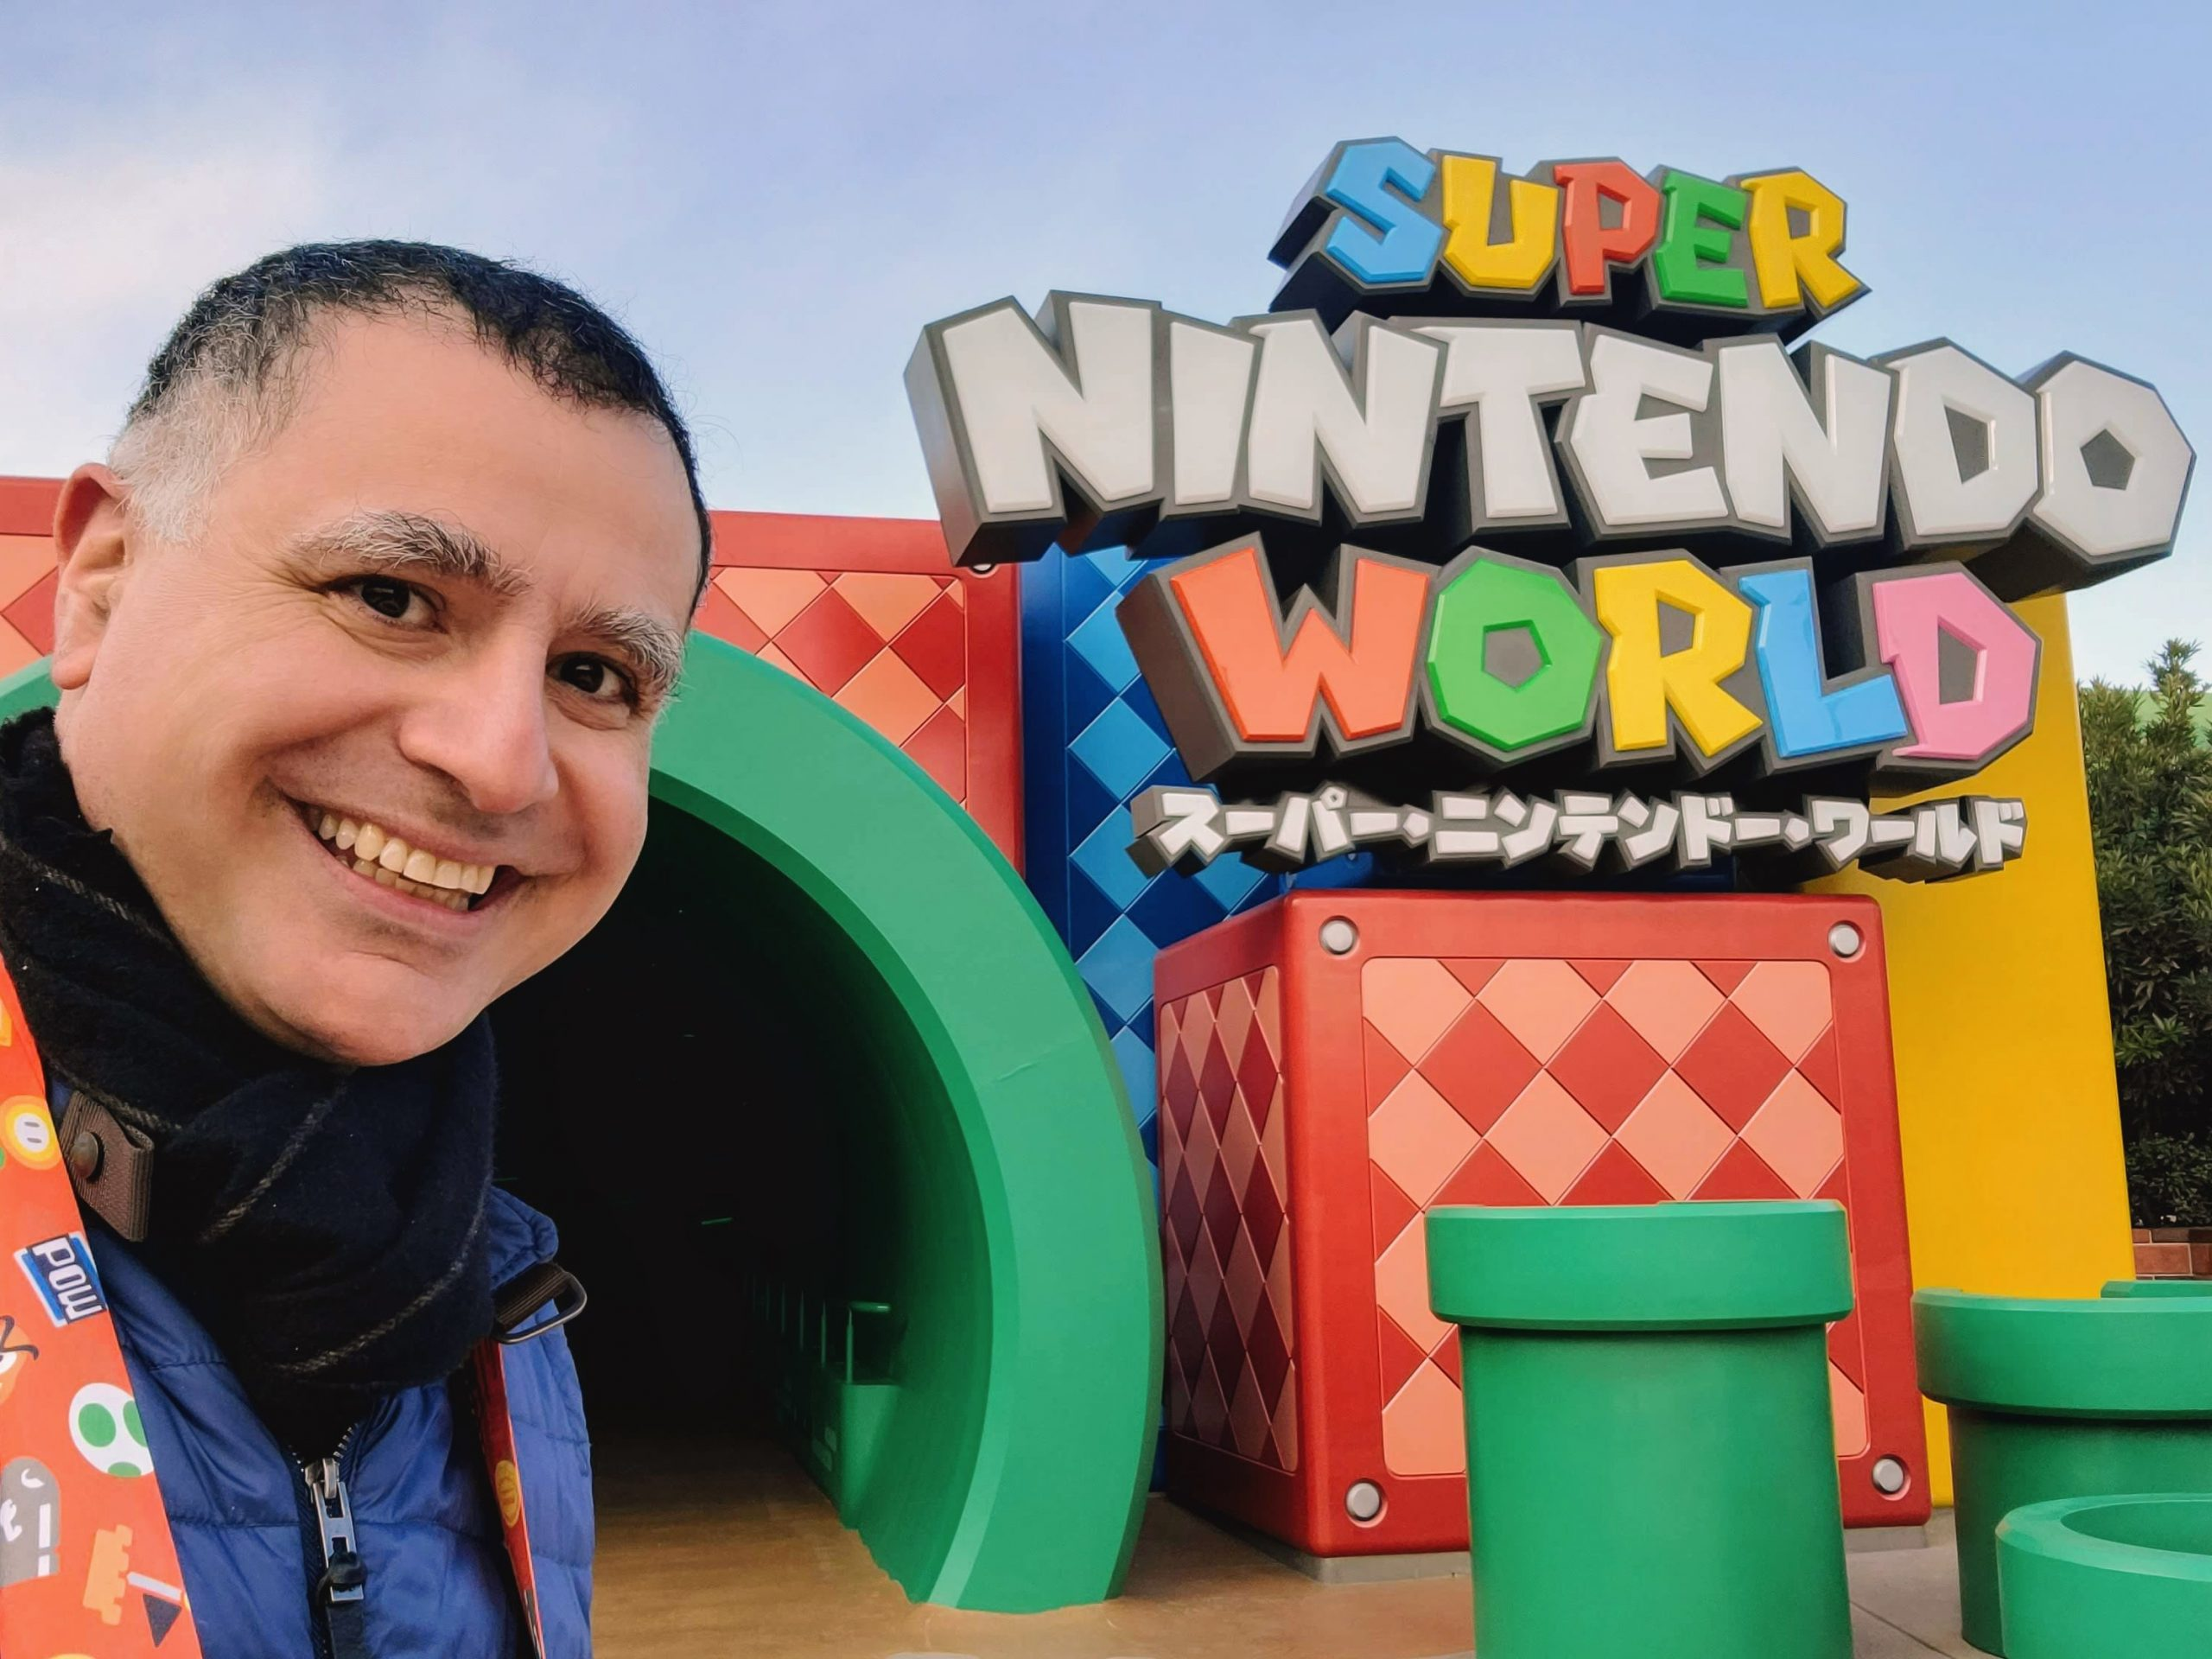 Super Nintendo World at USJ in Osaka, Japan